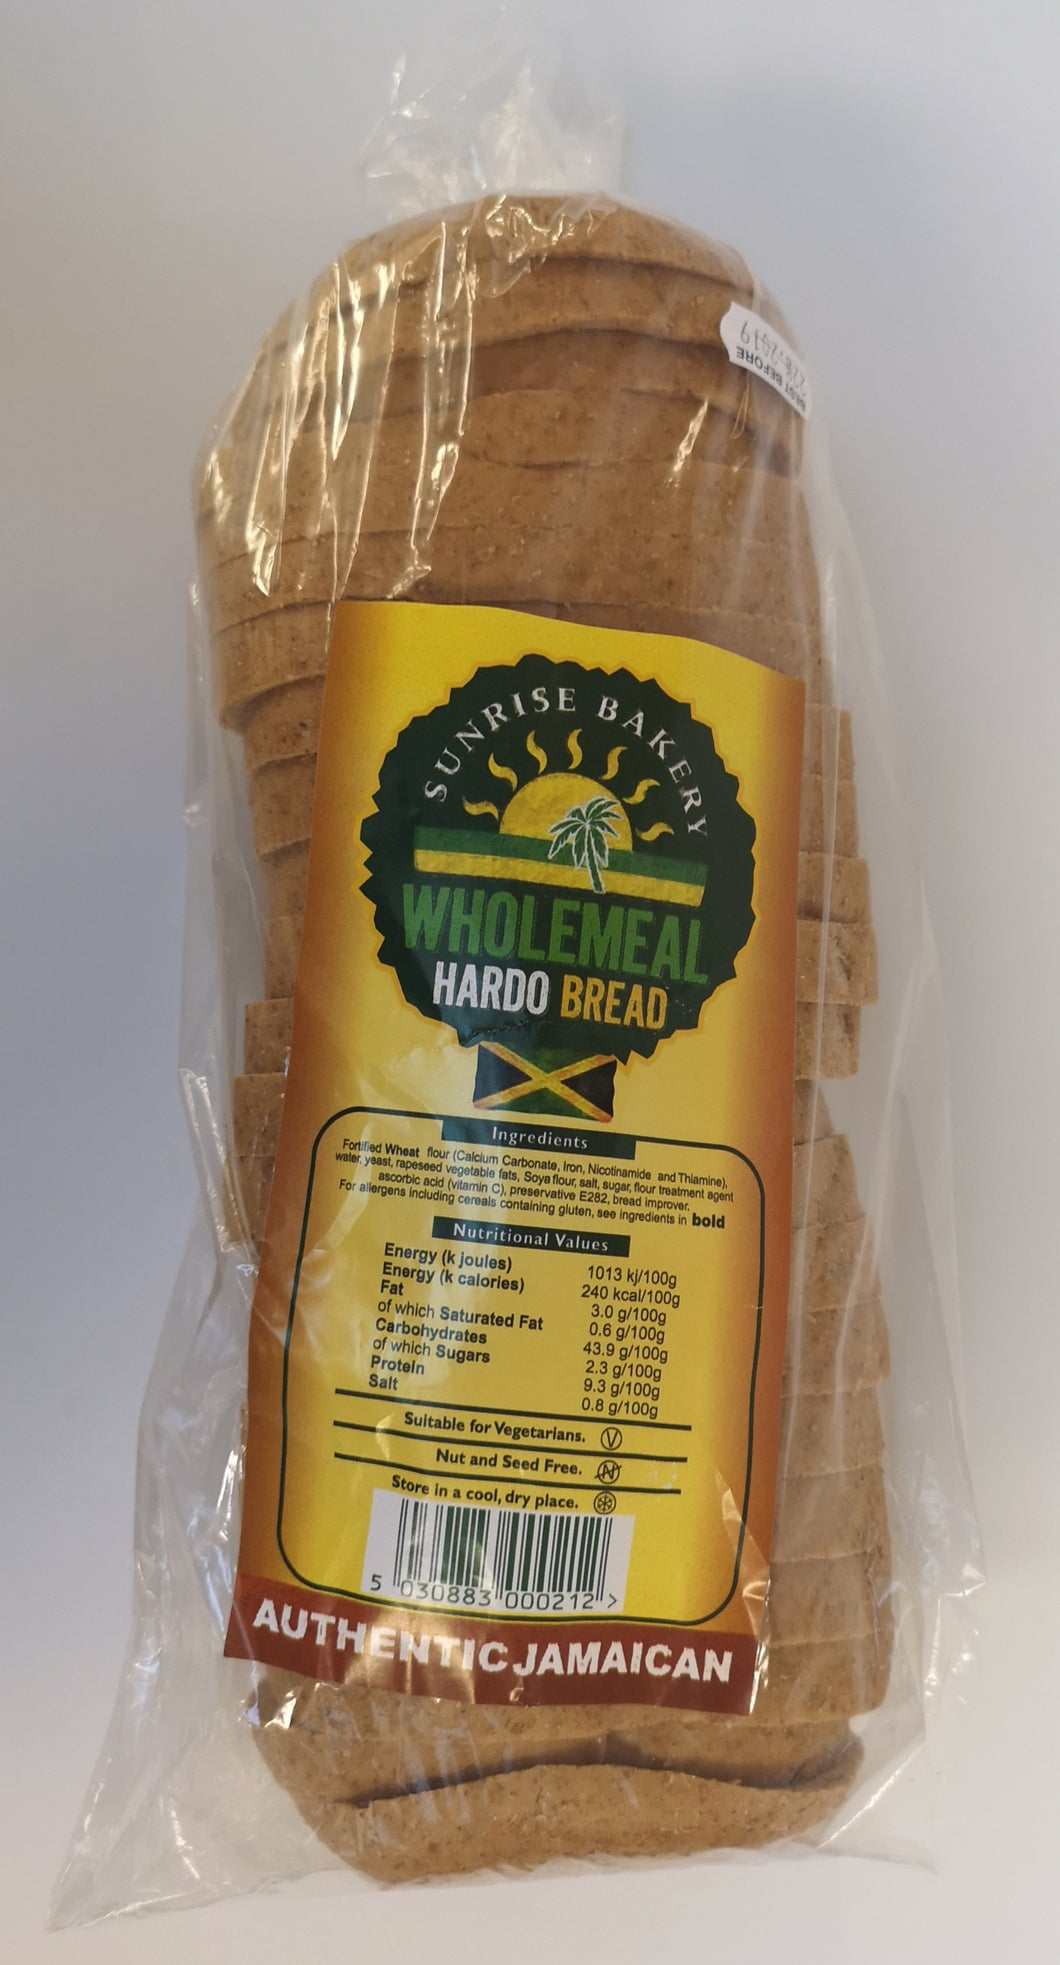 Sunrise Bakery Wholemeal Hardo Bread